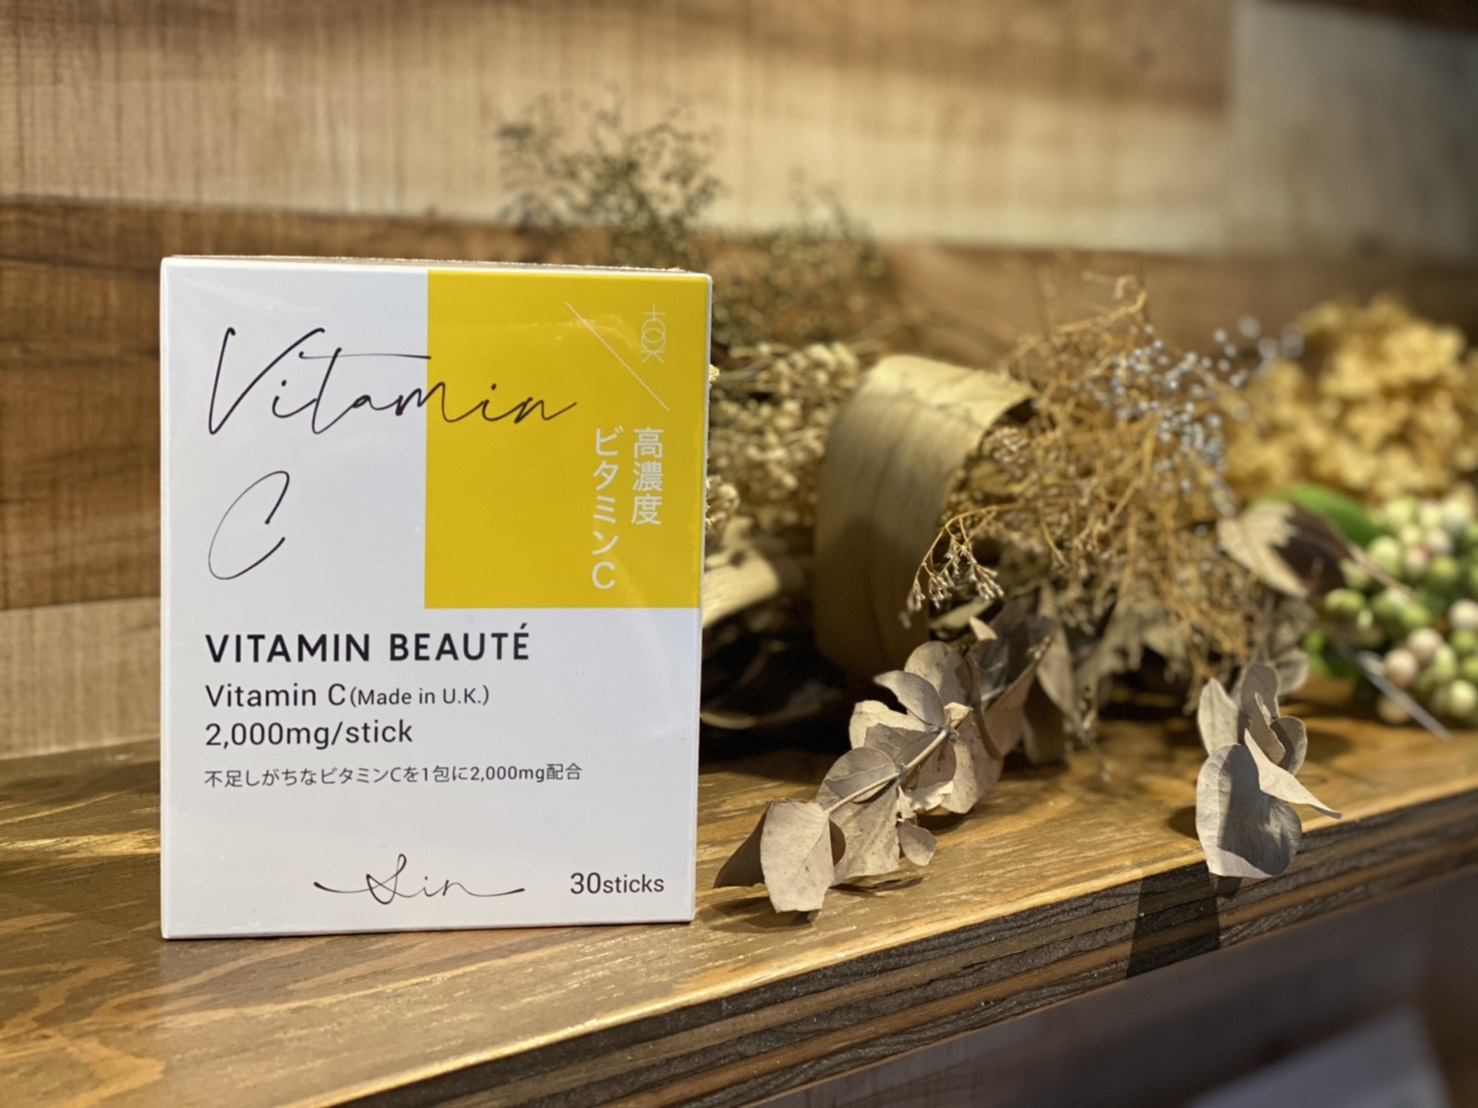 VITAMIN BEAUTE